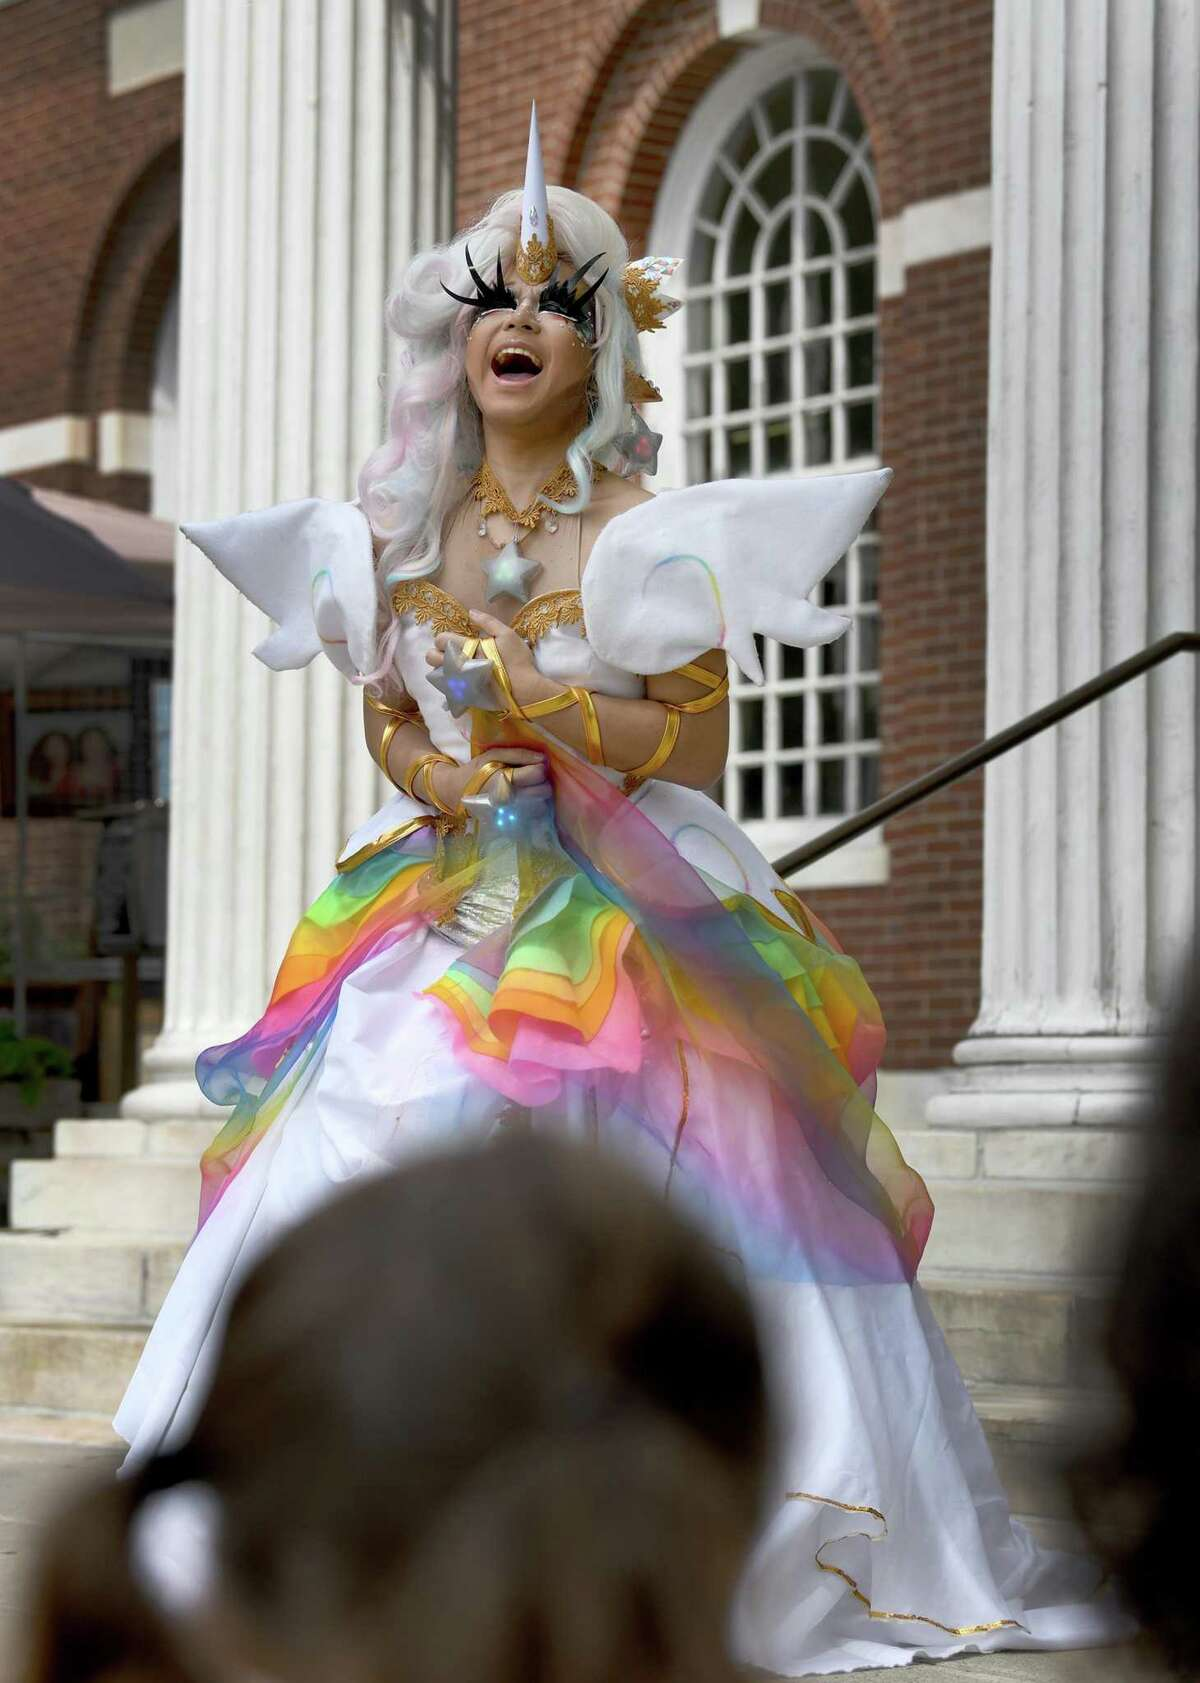 Robin Richards of Stamford performs a song for an audience outside of the Ferguson Library in Stamford Saturday, August 7, 2021. The Ferguson Library hosted an outdoor drag storytime, featuring three drag performers. The storytime was part of Stamford Pride activities put on by the city's LGBTQIA organization.